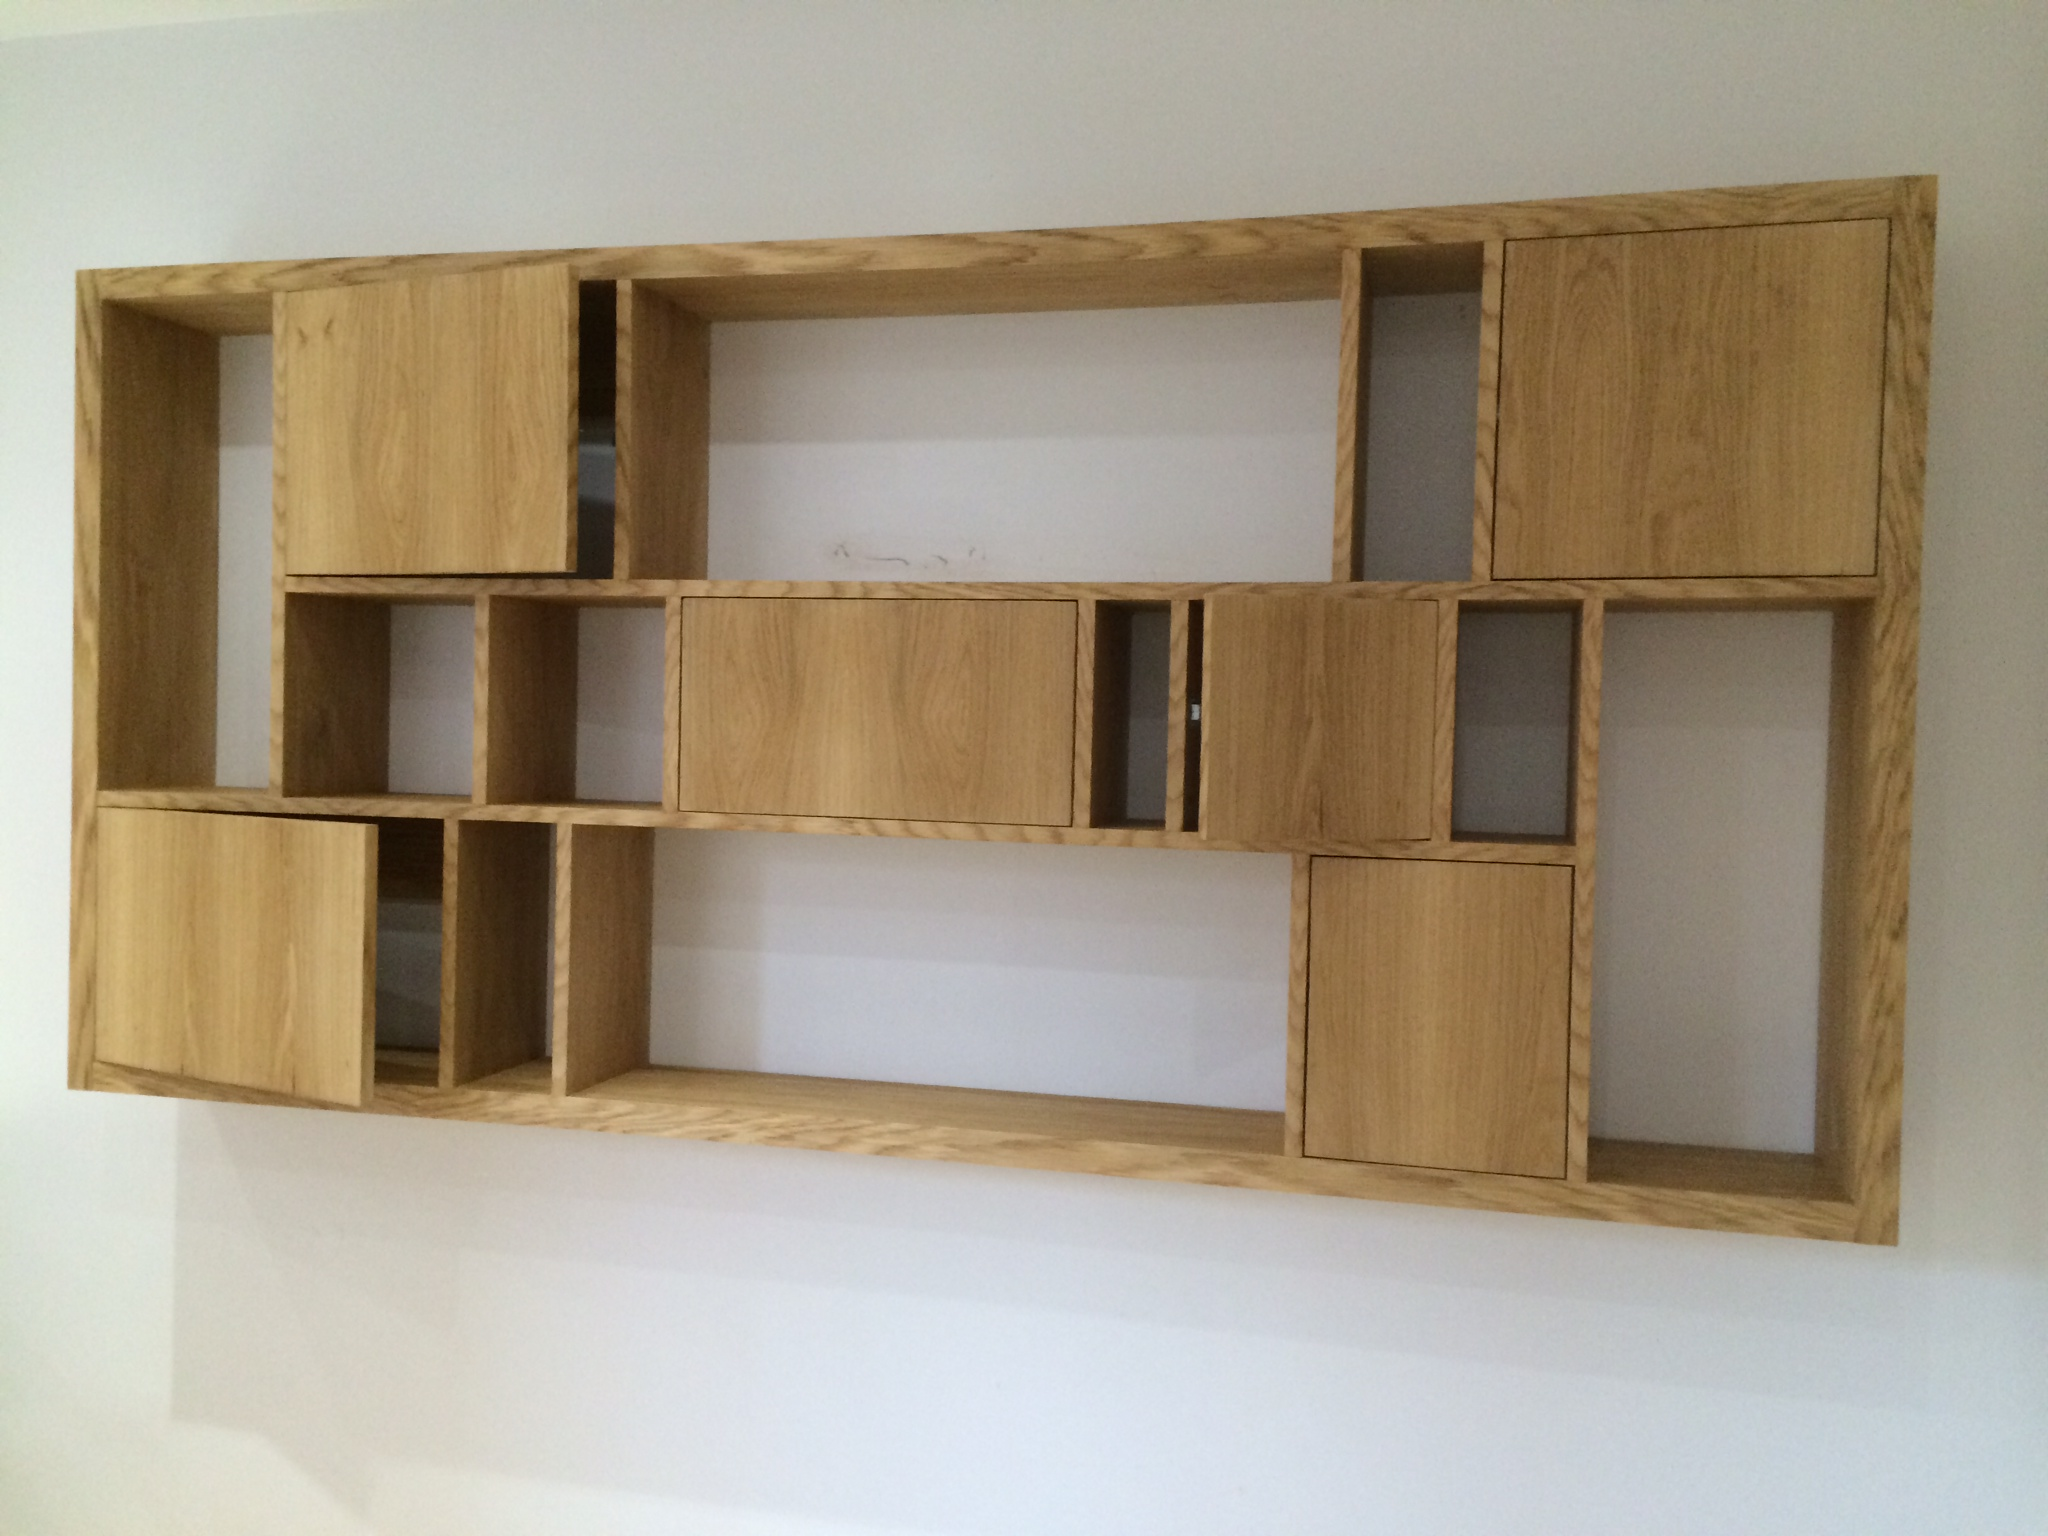 Bespoke Joinery In Newcastle Upon Tyne Jpc Joinery